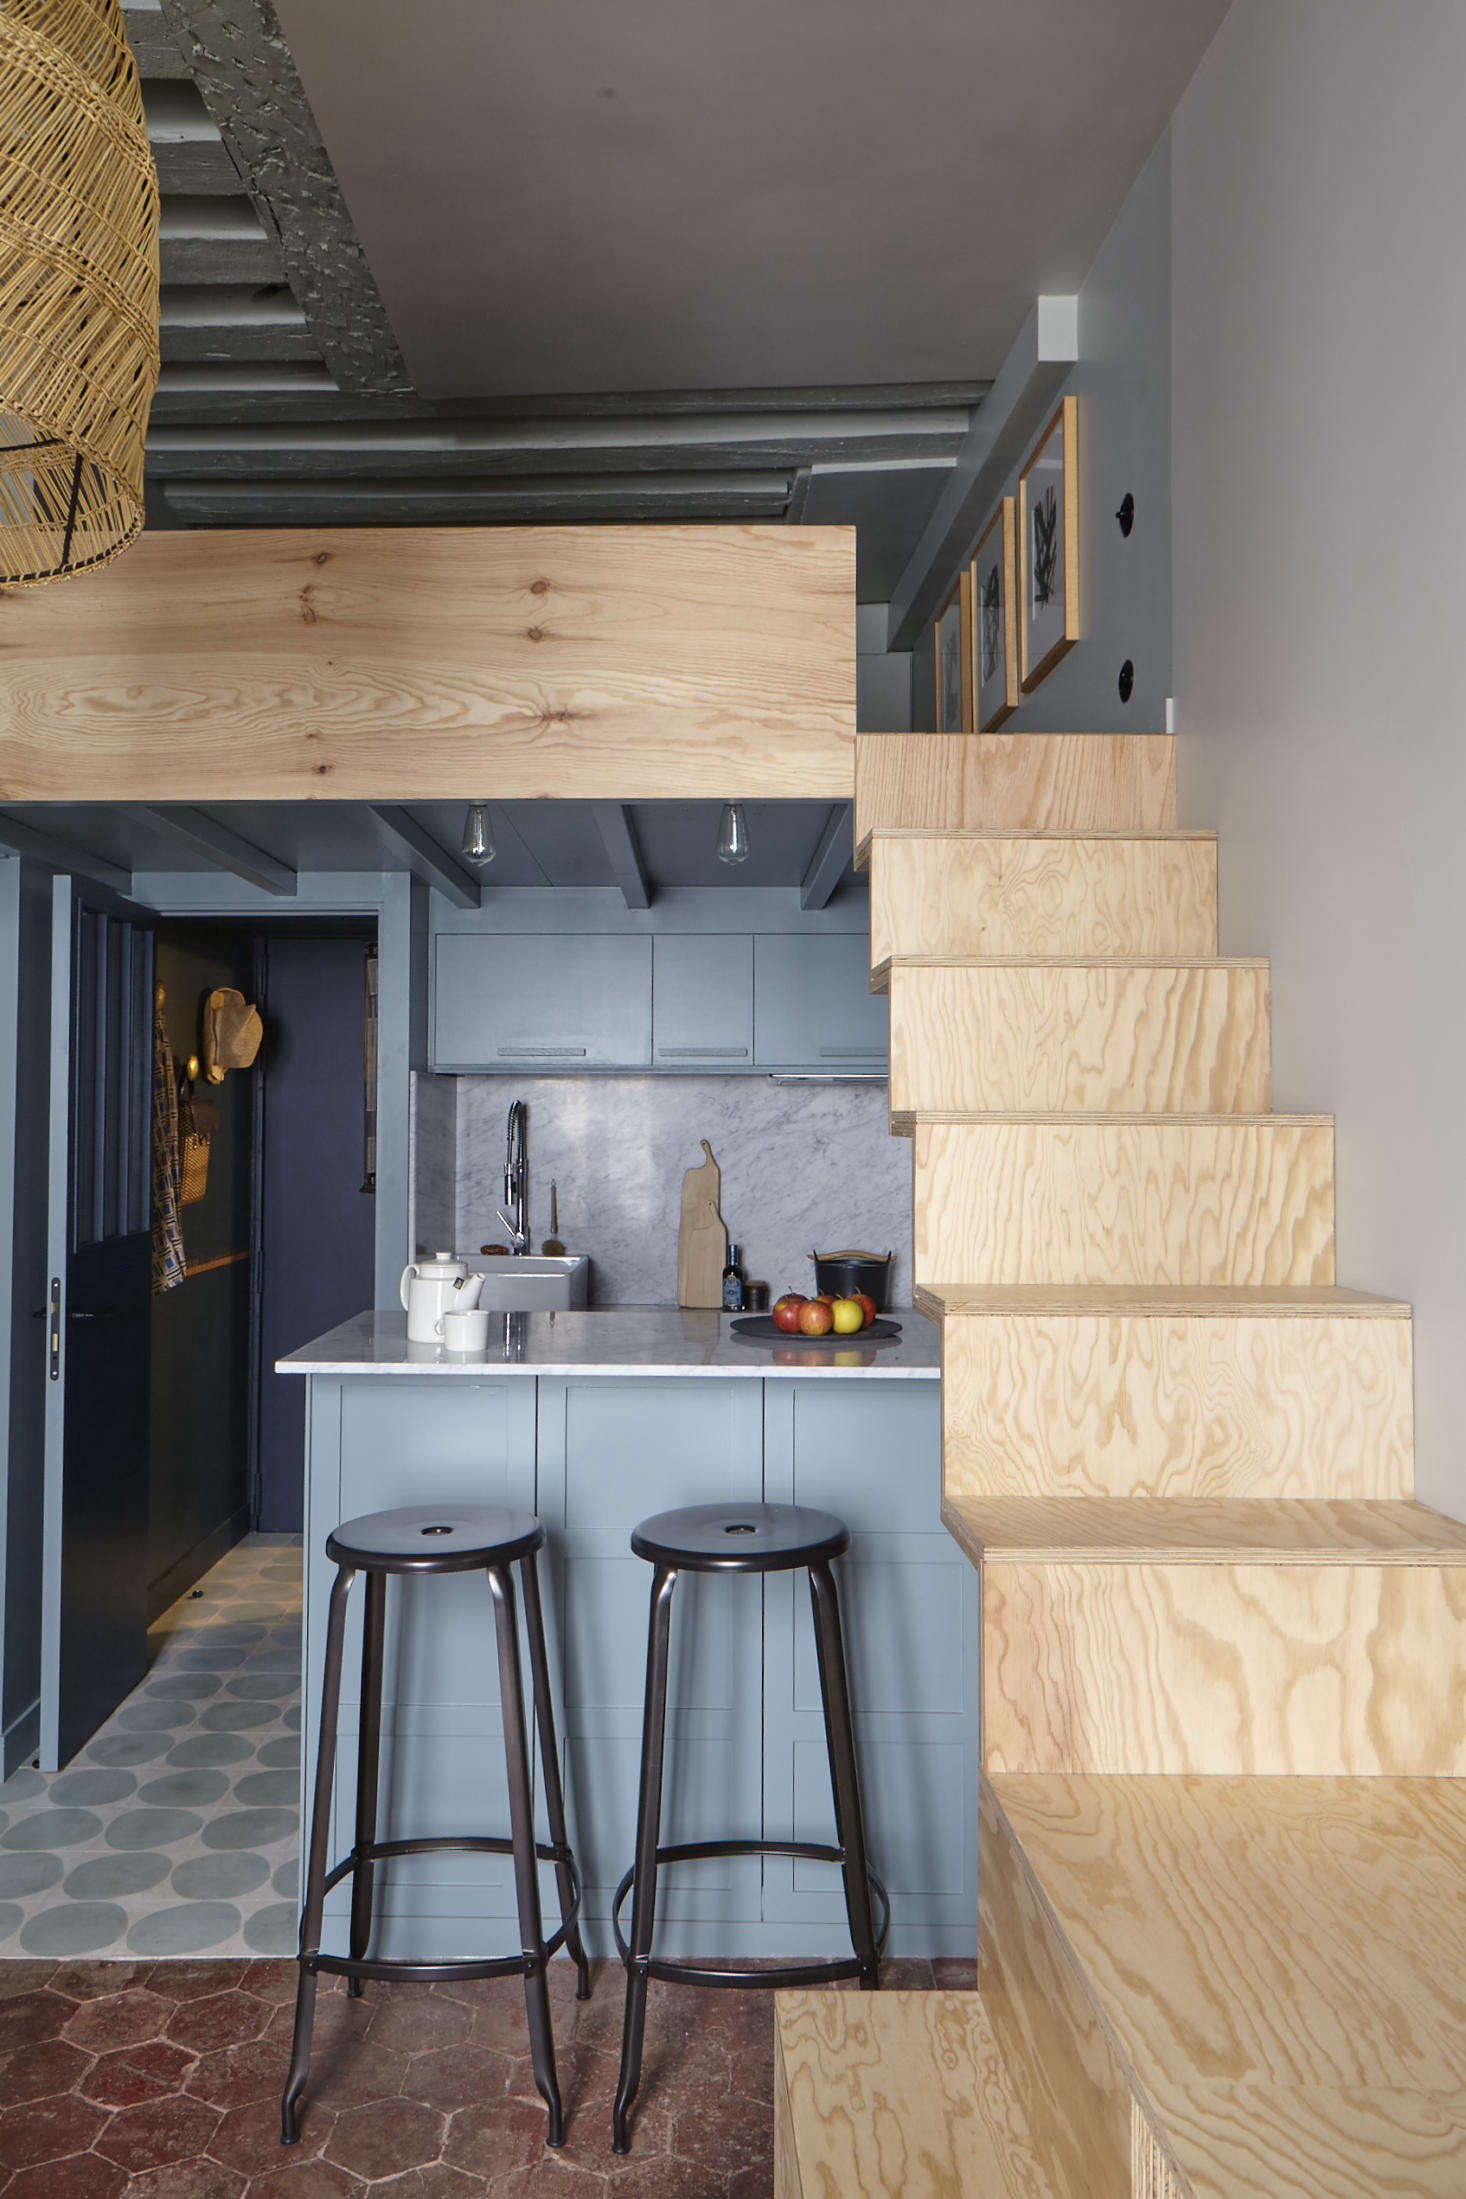 Tucked under the plywood stairs at the back of the apartment is a petite galley kitchen, awash in shades of blue. (The entry is at left, through the blue door.) The mod floor tiles are by Claesson Koivisto Rune via Marrakech Design.